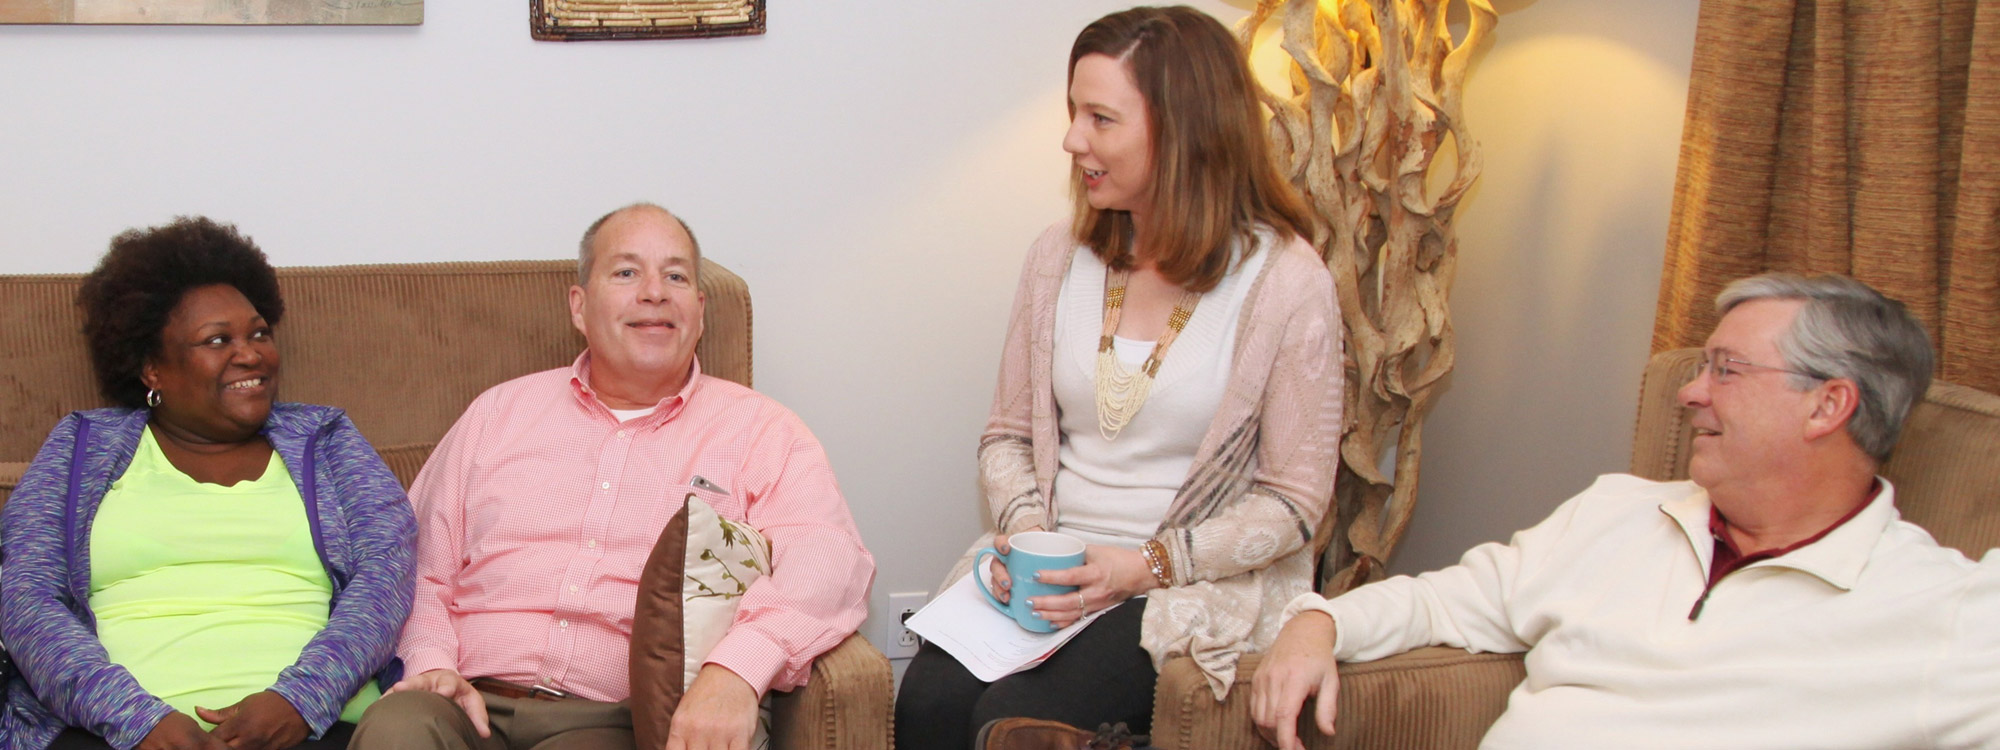 Cancer Support Community of Greater St. Louis offers a wide array of services to those impacted by cancer.